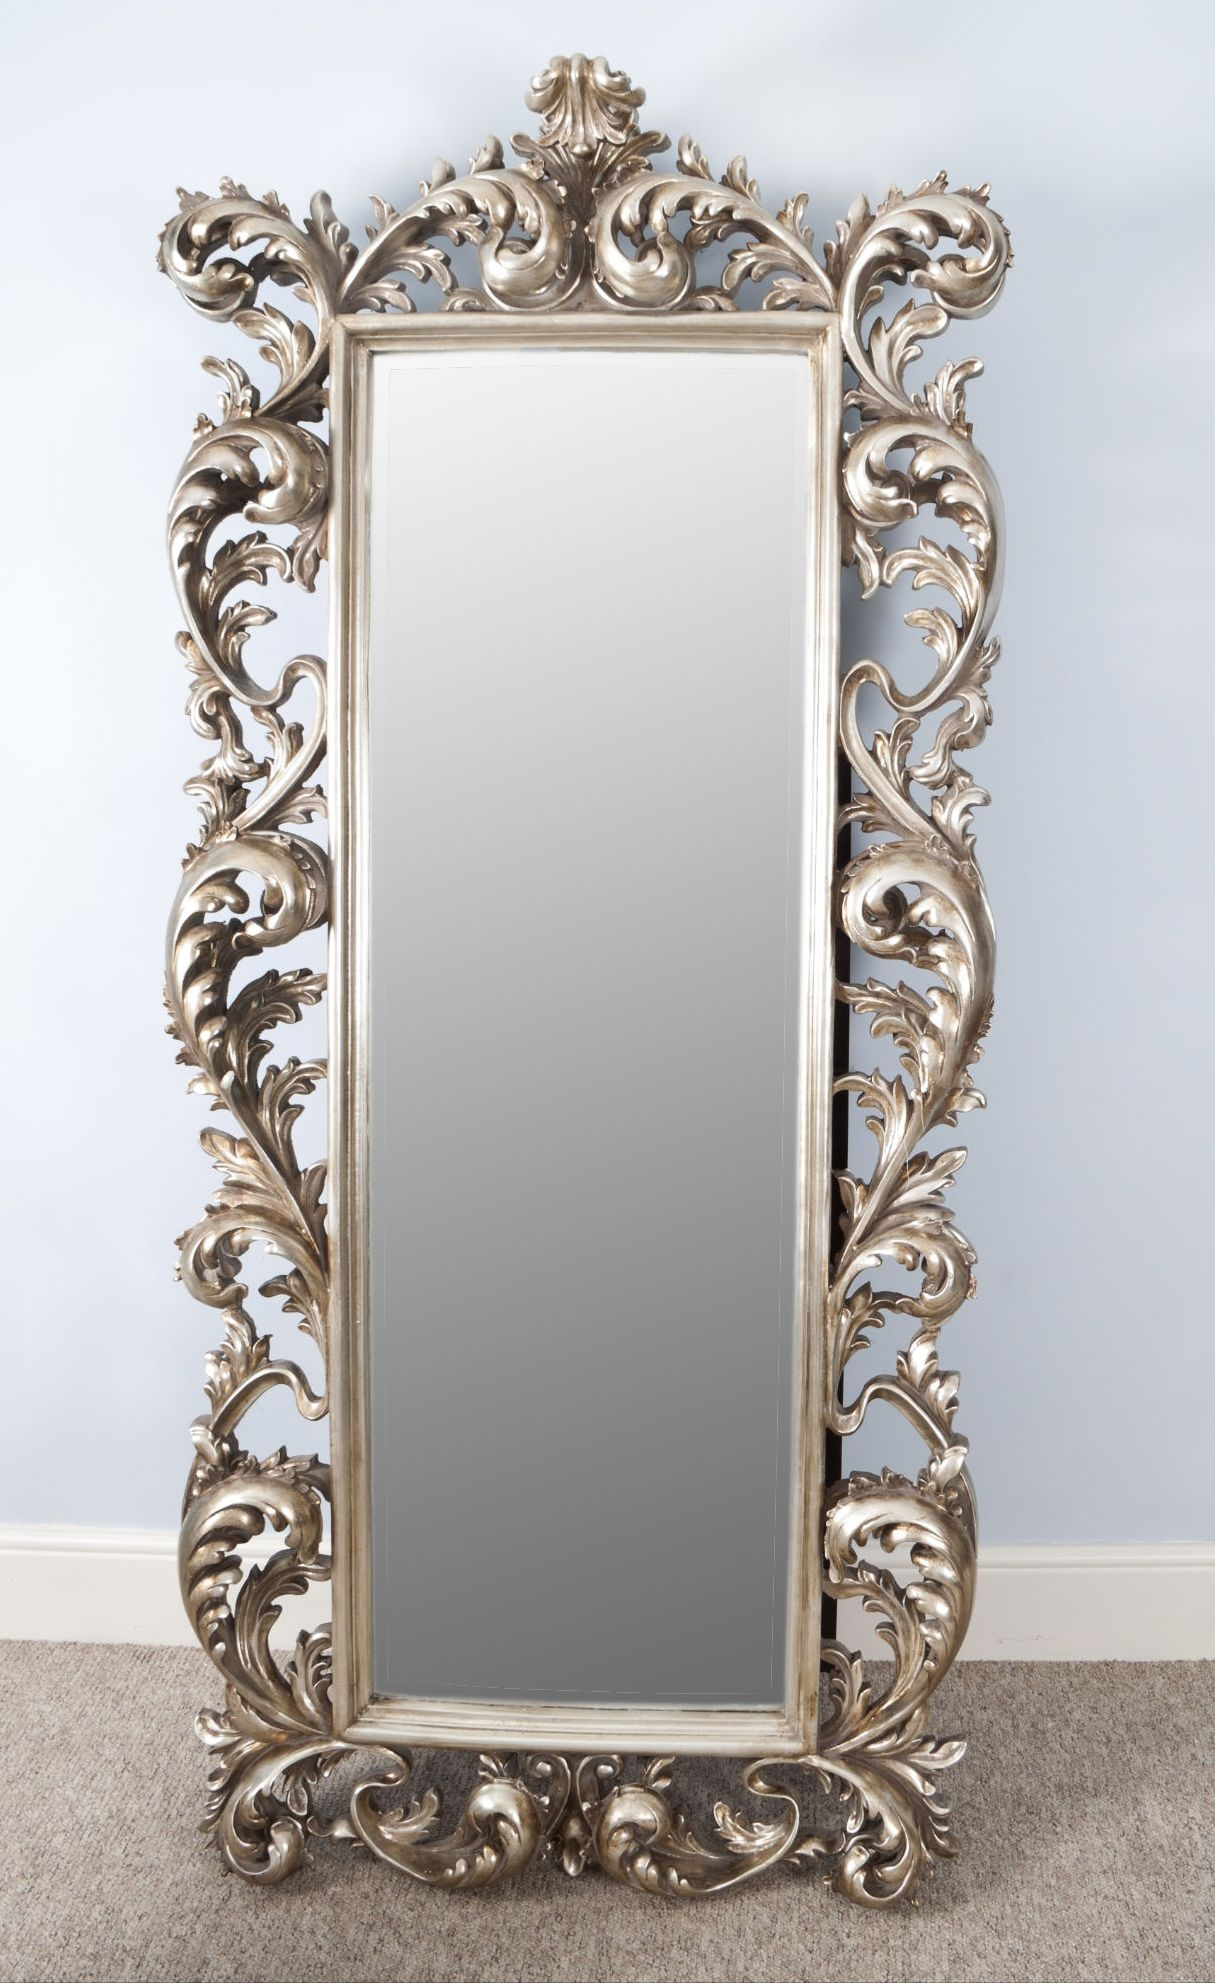 Wondrous Old Oval Mirror Antique Cheval Wall Mirror Likewise Grey For Silver Mirrors For Sale (Image 15 of 15)